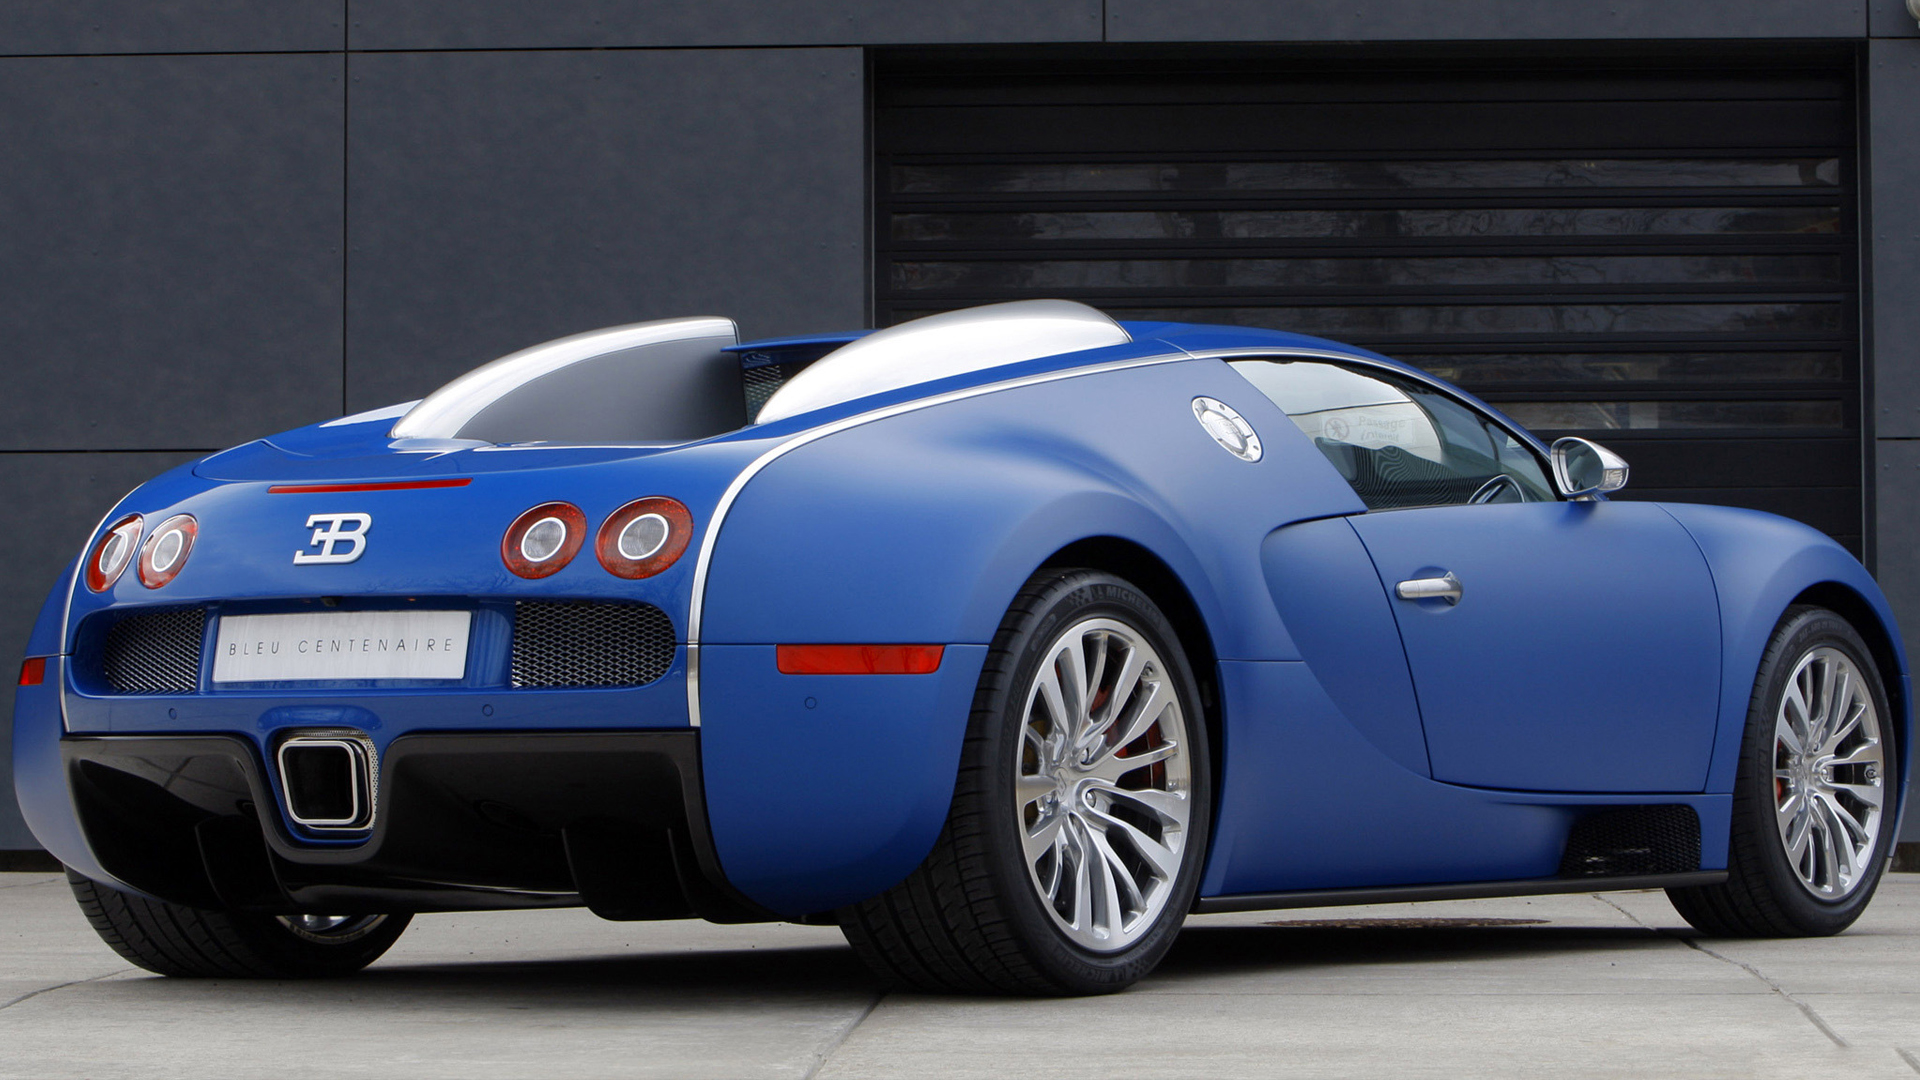 bugatti hd wallpapers 1080p wallpapersafari. Black Bedroom Furniture Sets. Home Design Ideas